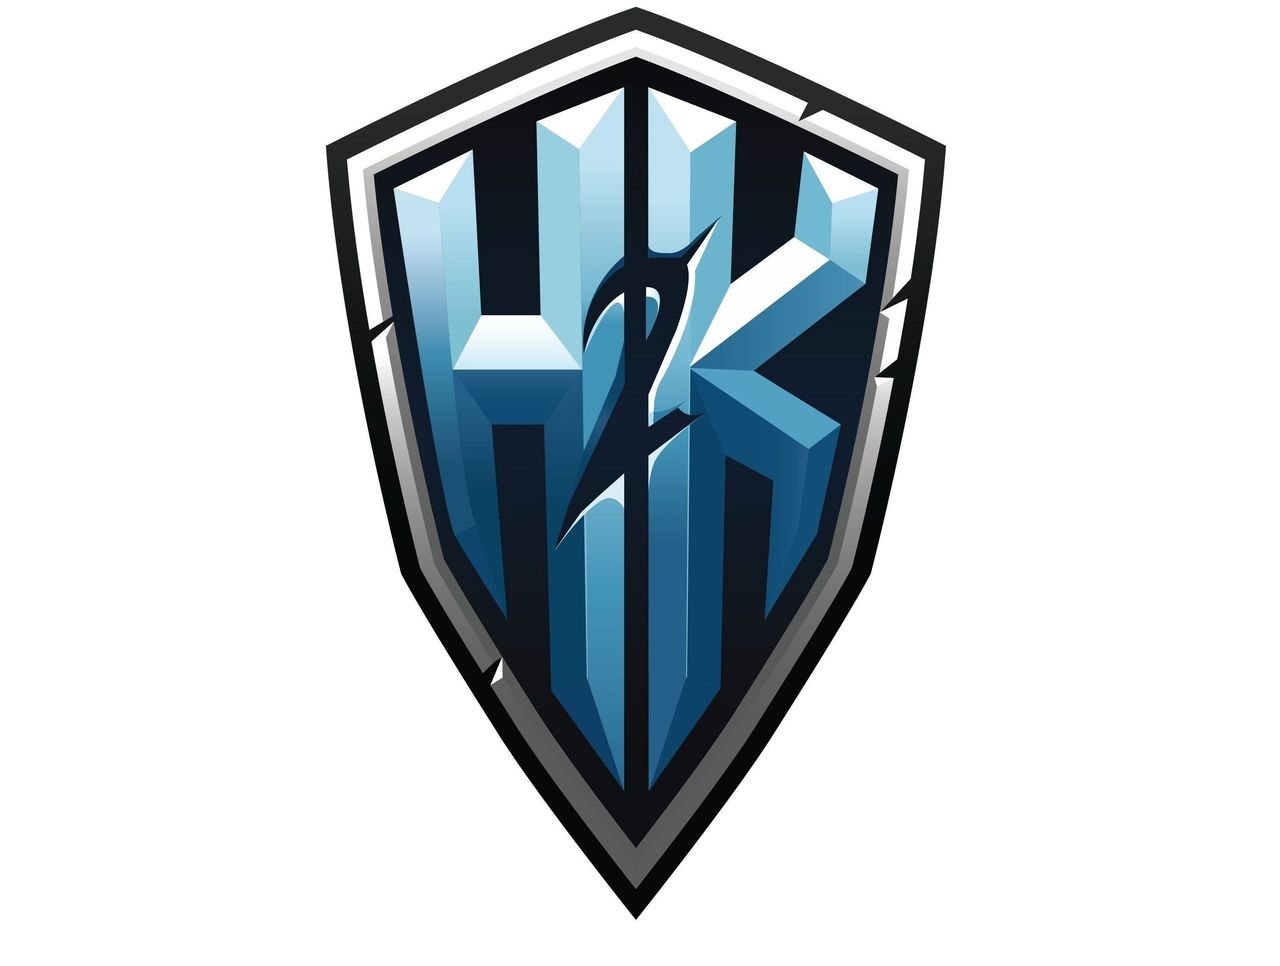 H2K intend to apply for franchised EU LCS, expect bid 'will be well received'